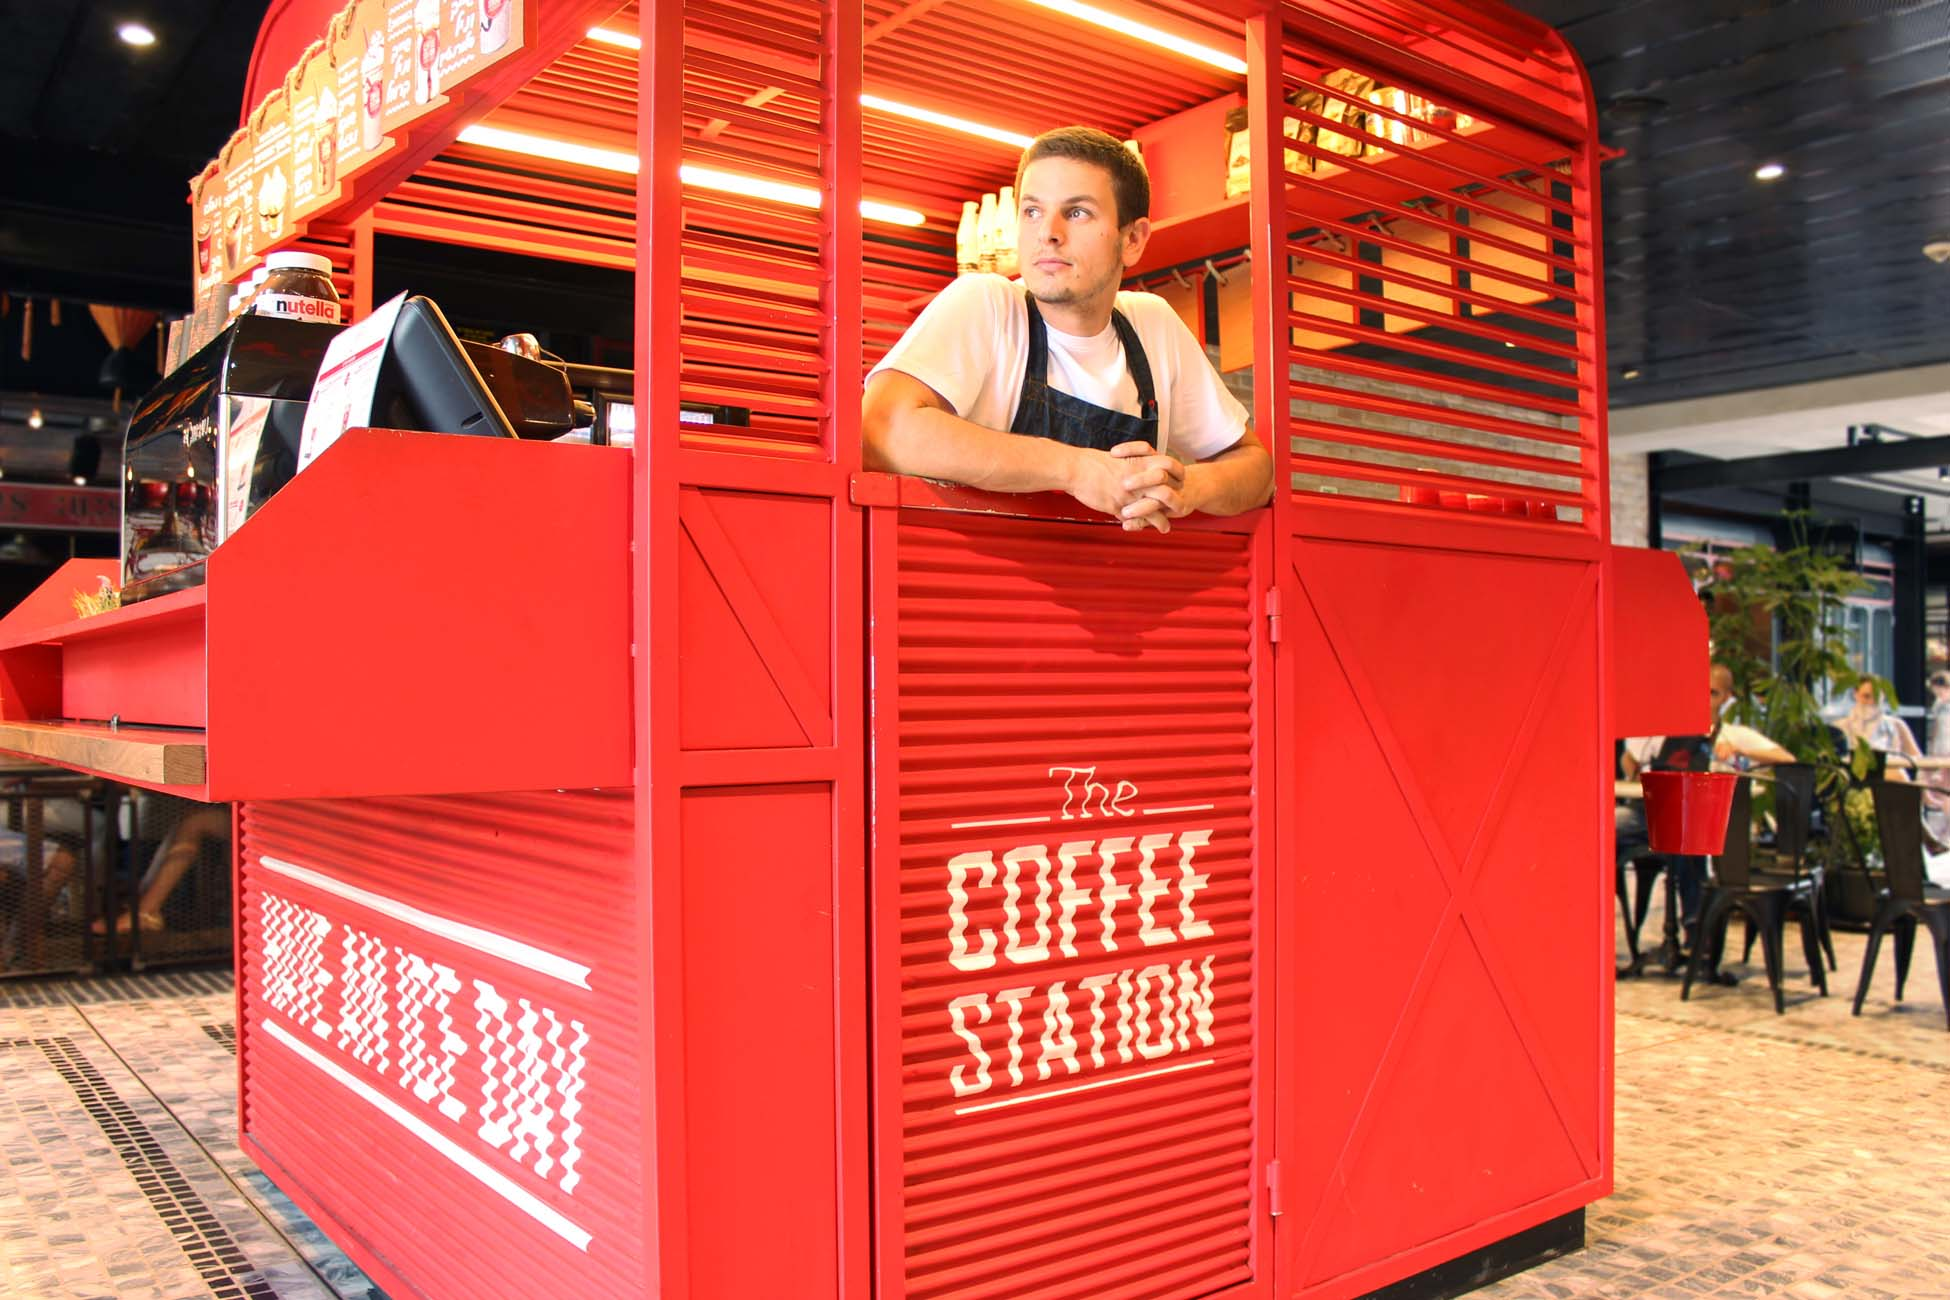 7_CoffeeStation_Sarona.jpg